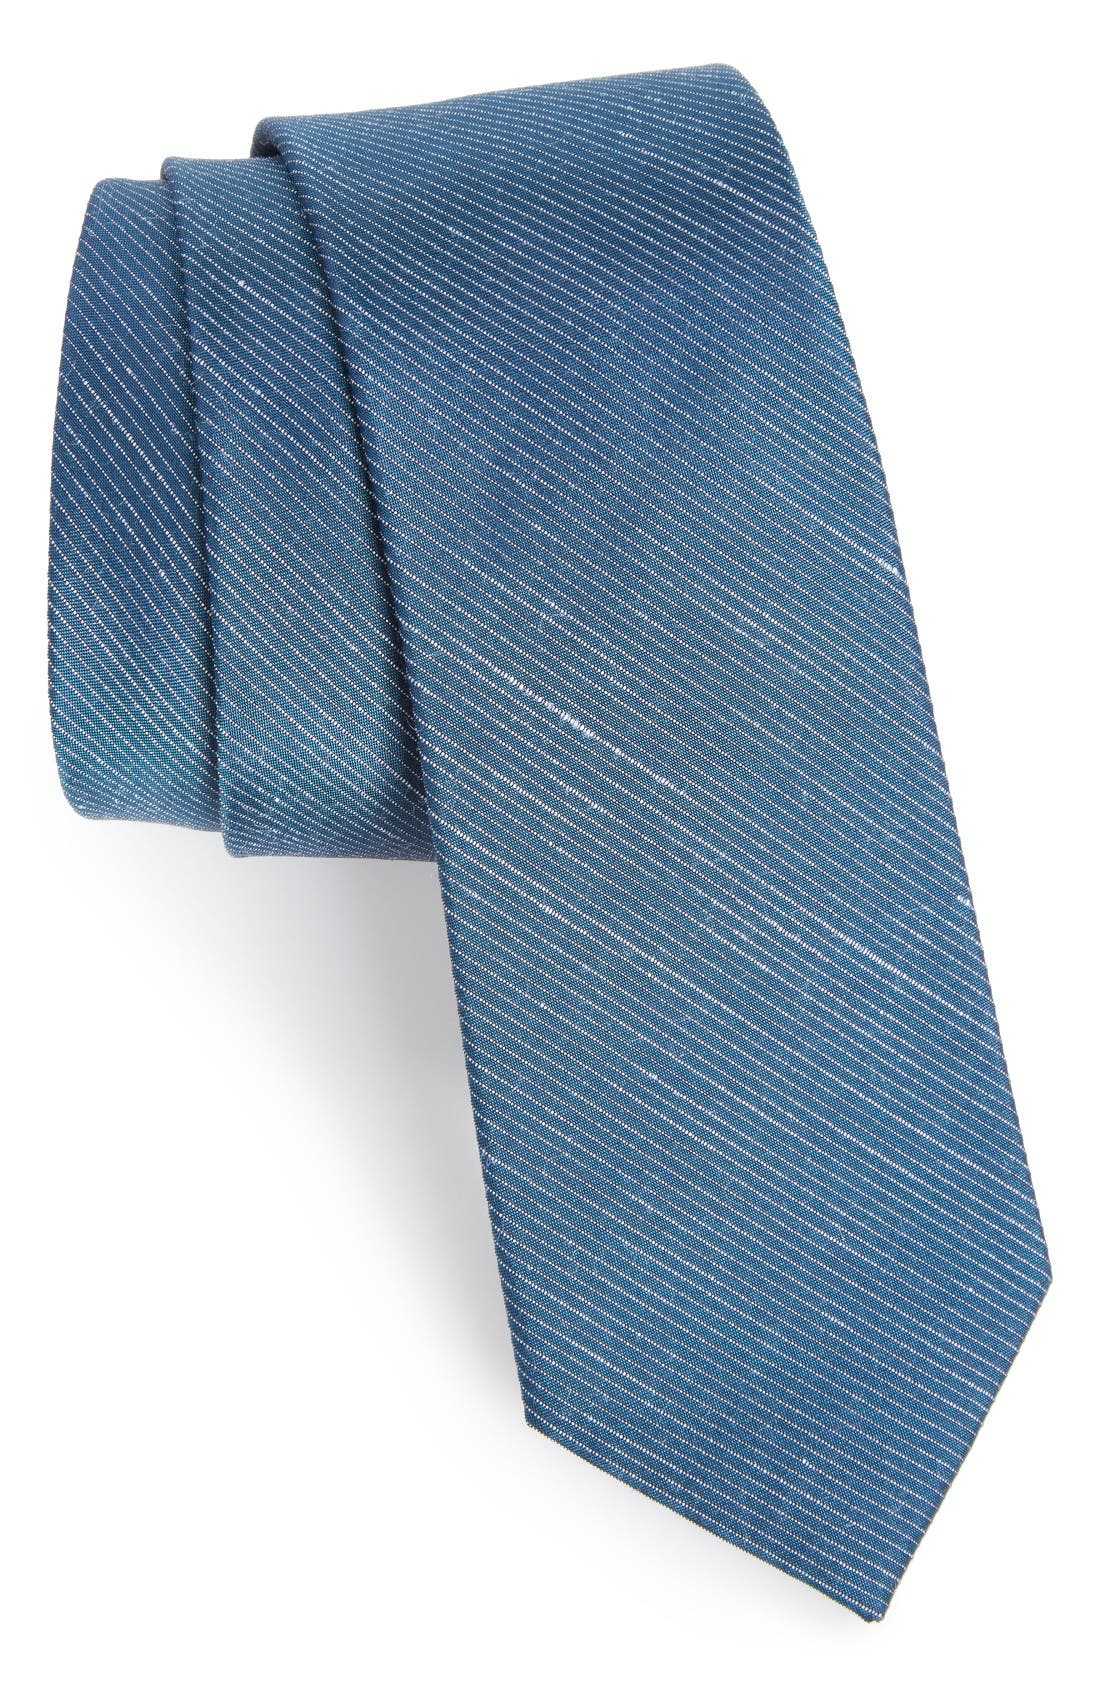 Pinstripe Silk & Linen Tie,                         Main,                         color, Serene Blue